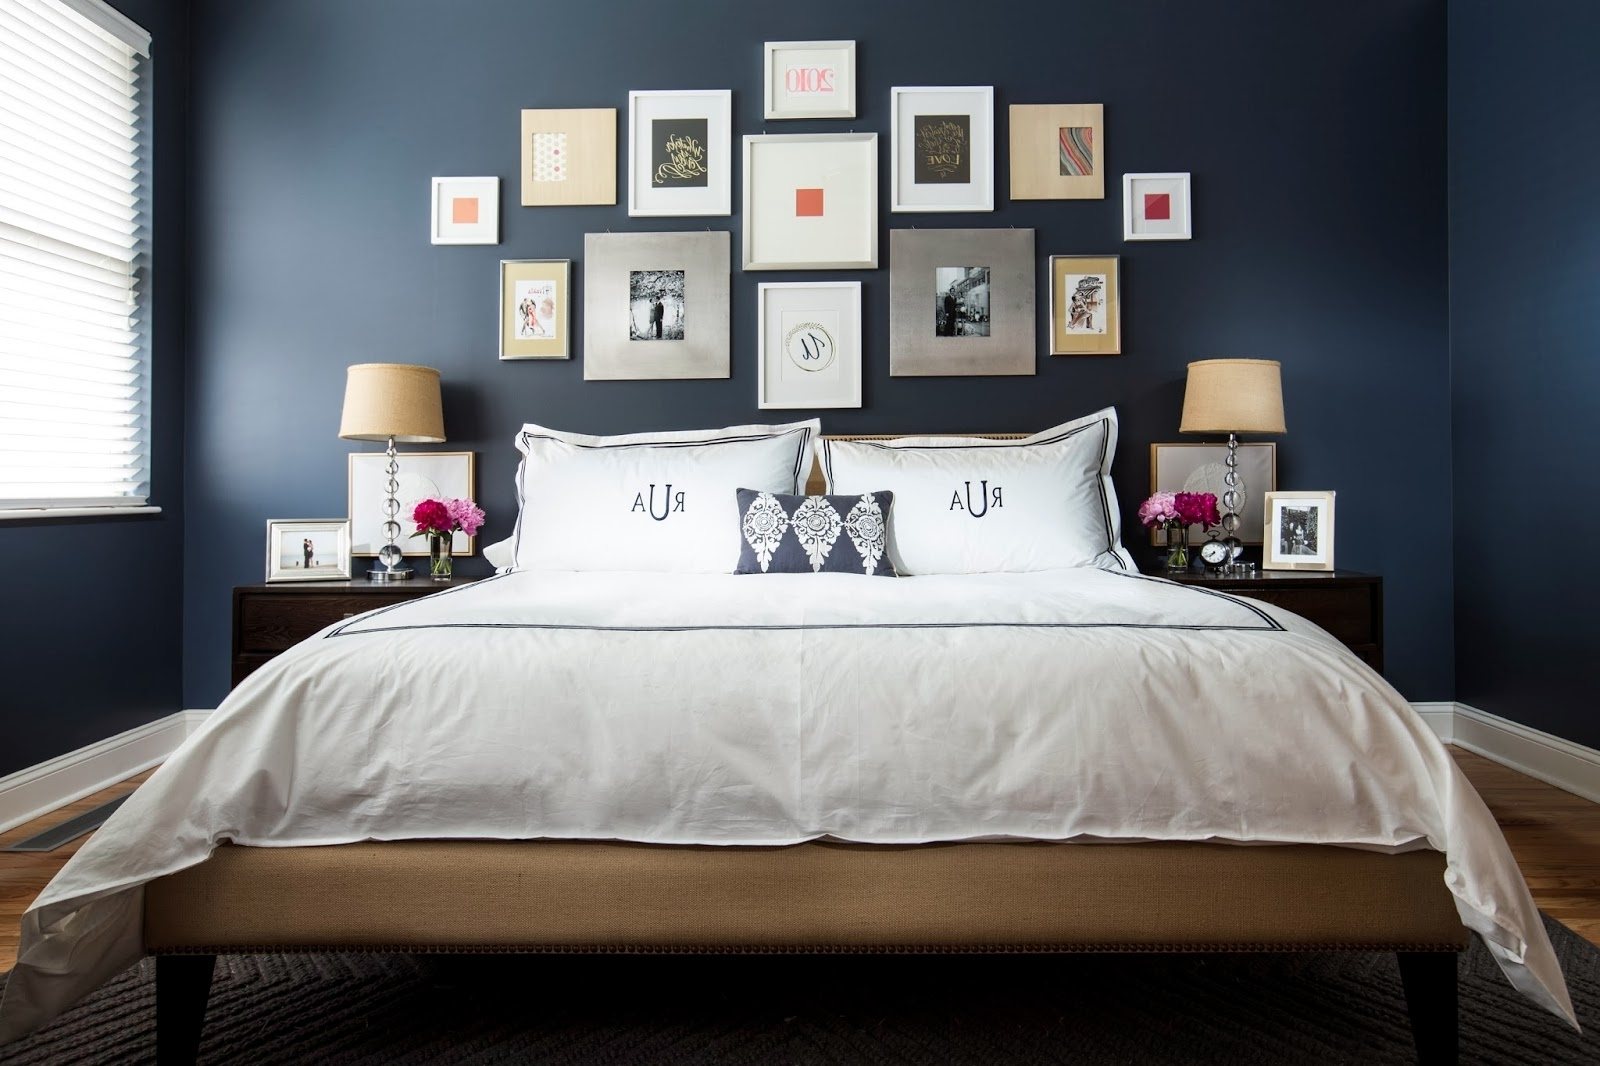 Ideas For Wall Art Over Bed • Walls Ideas Throughout Preferred Wall Art Over Bed (View 5 of 15)